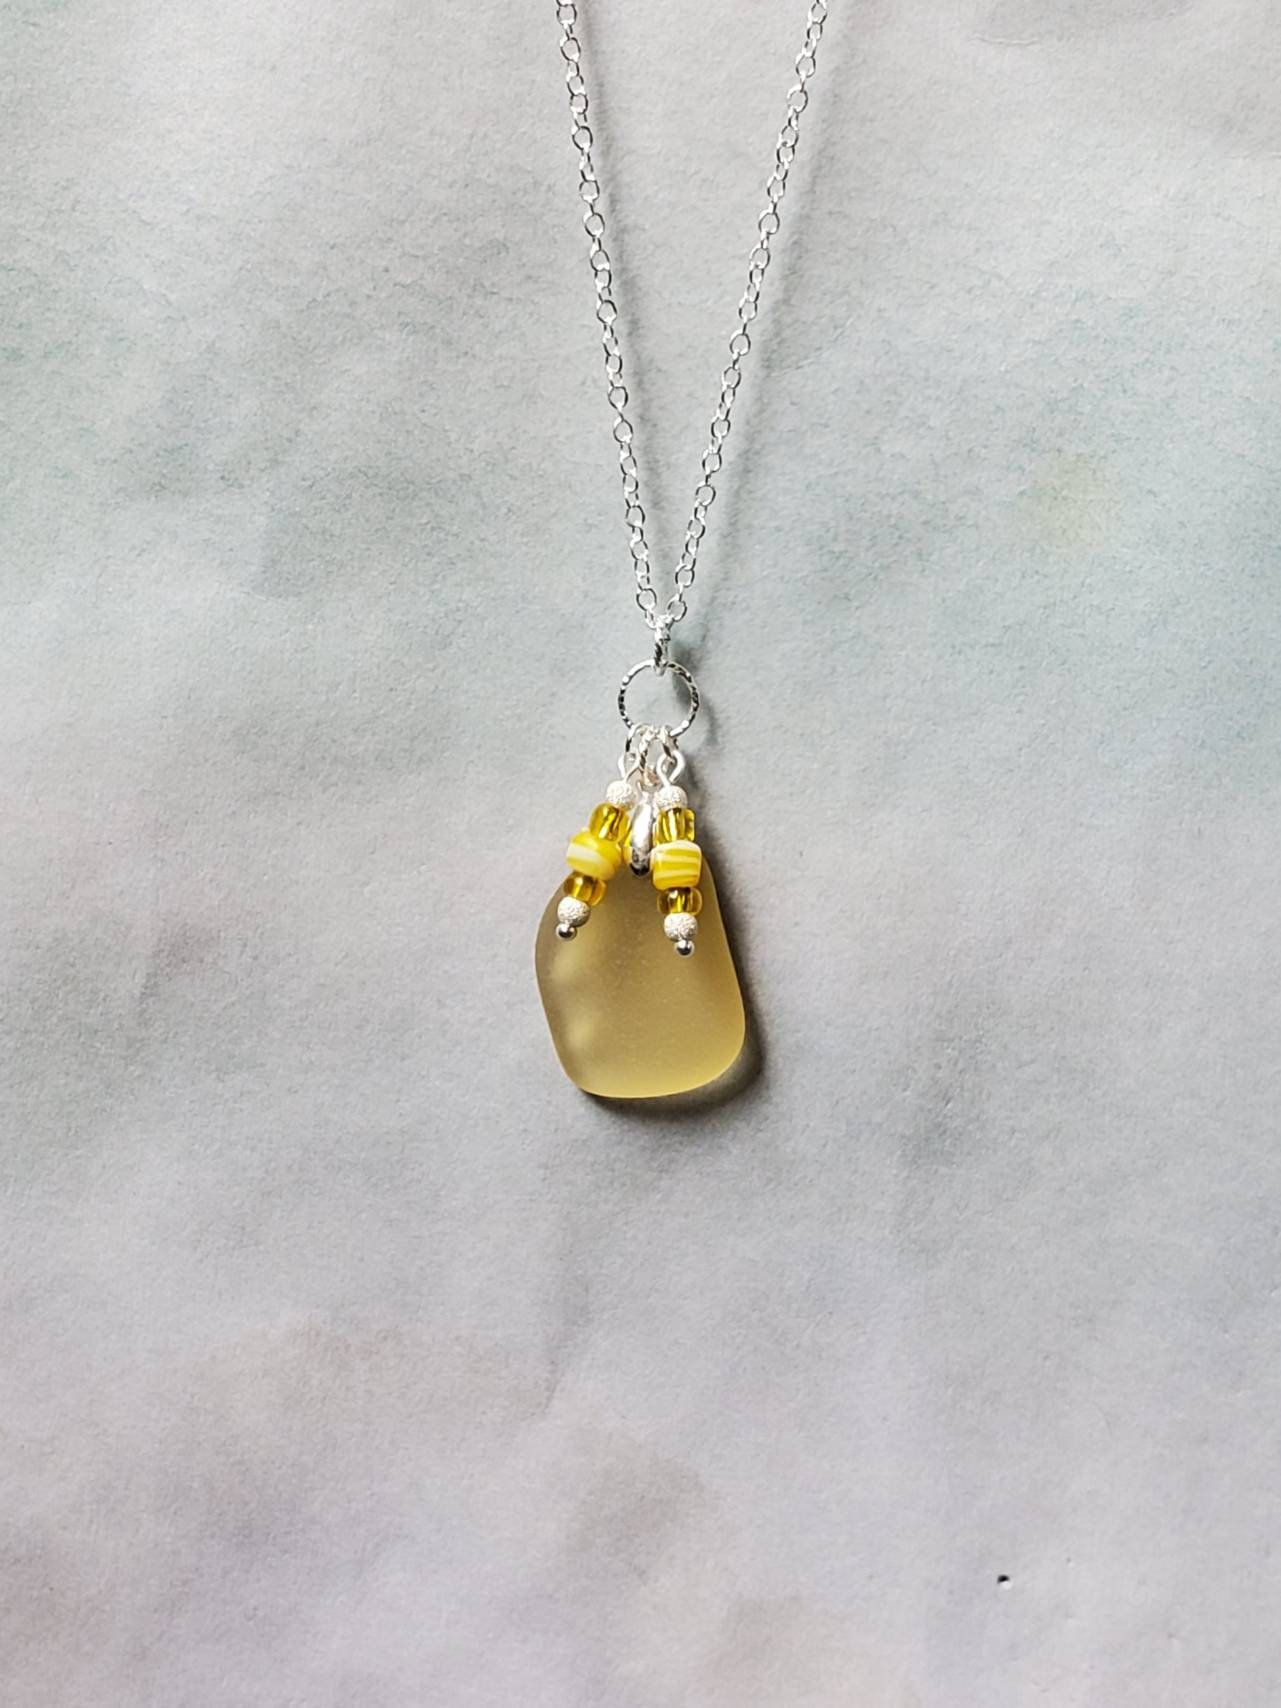 Photo of Genuine Yellow Seaglass Pendant & Sterling Silver Necklace/Handmade Seaglass Necklace/Rare Seaglass Jewelry/Beaded Yellow Seaglass Necklace